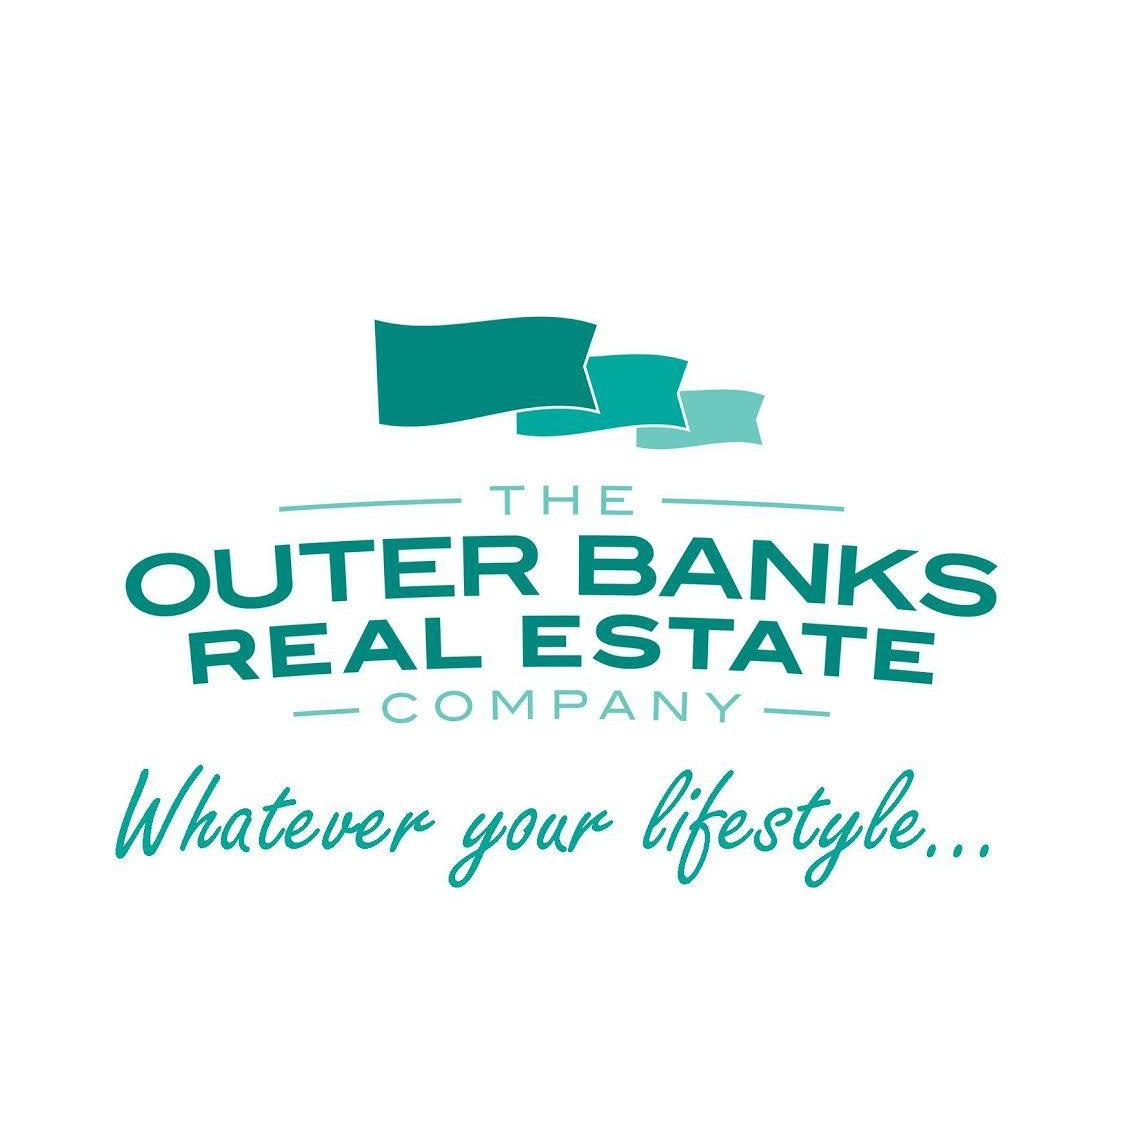 Outer banks real estate company southern shores north